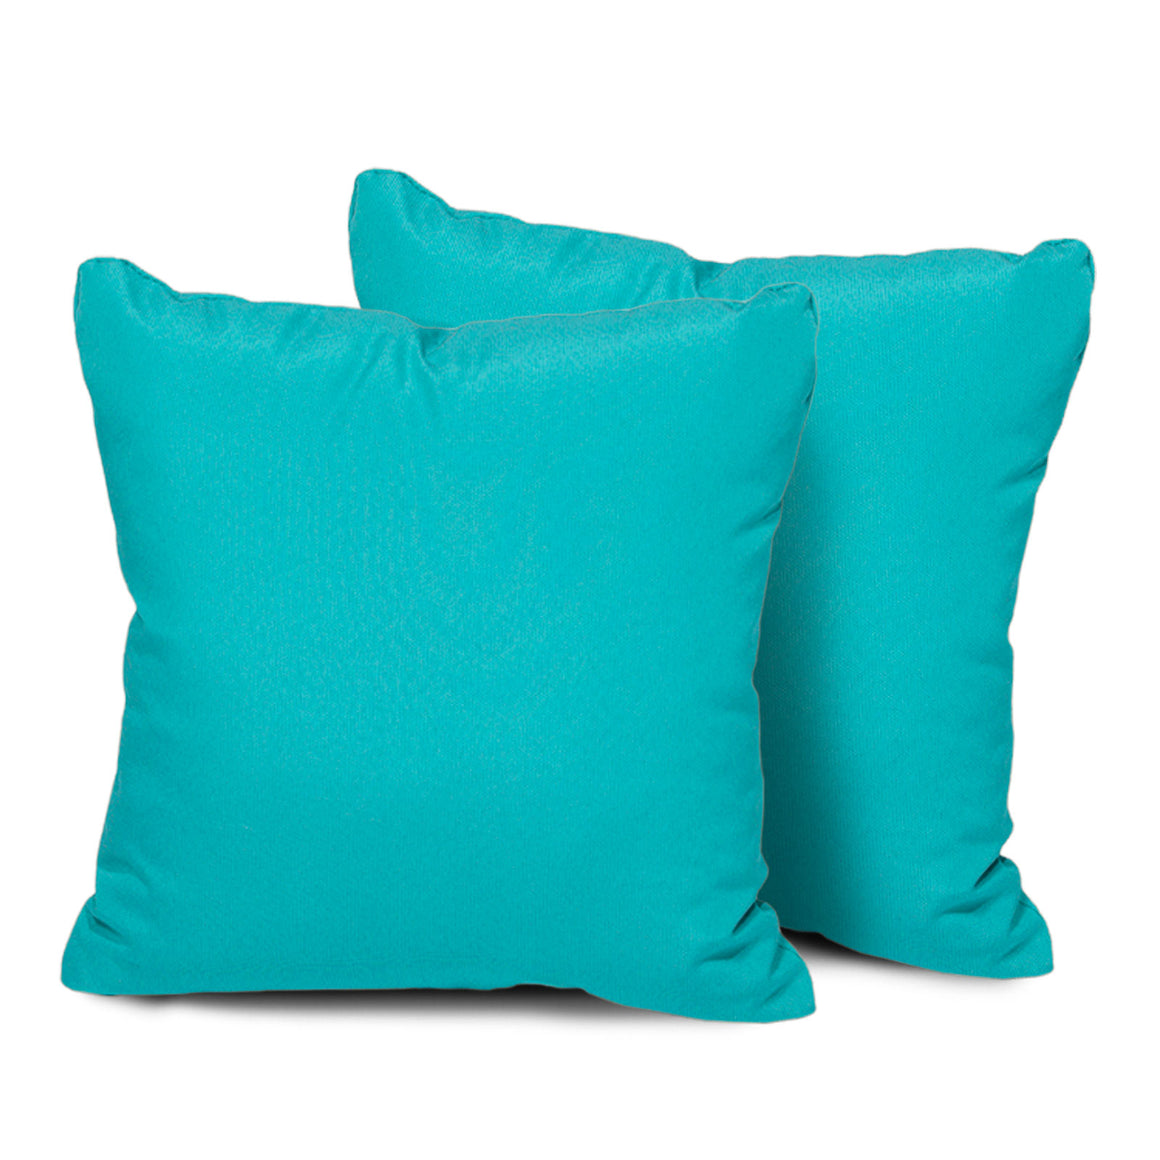 Aruba Outdoor Throw Pillows Square Set of 2 , TK Classics- grayburd